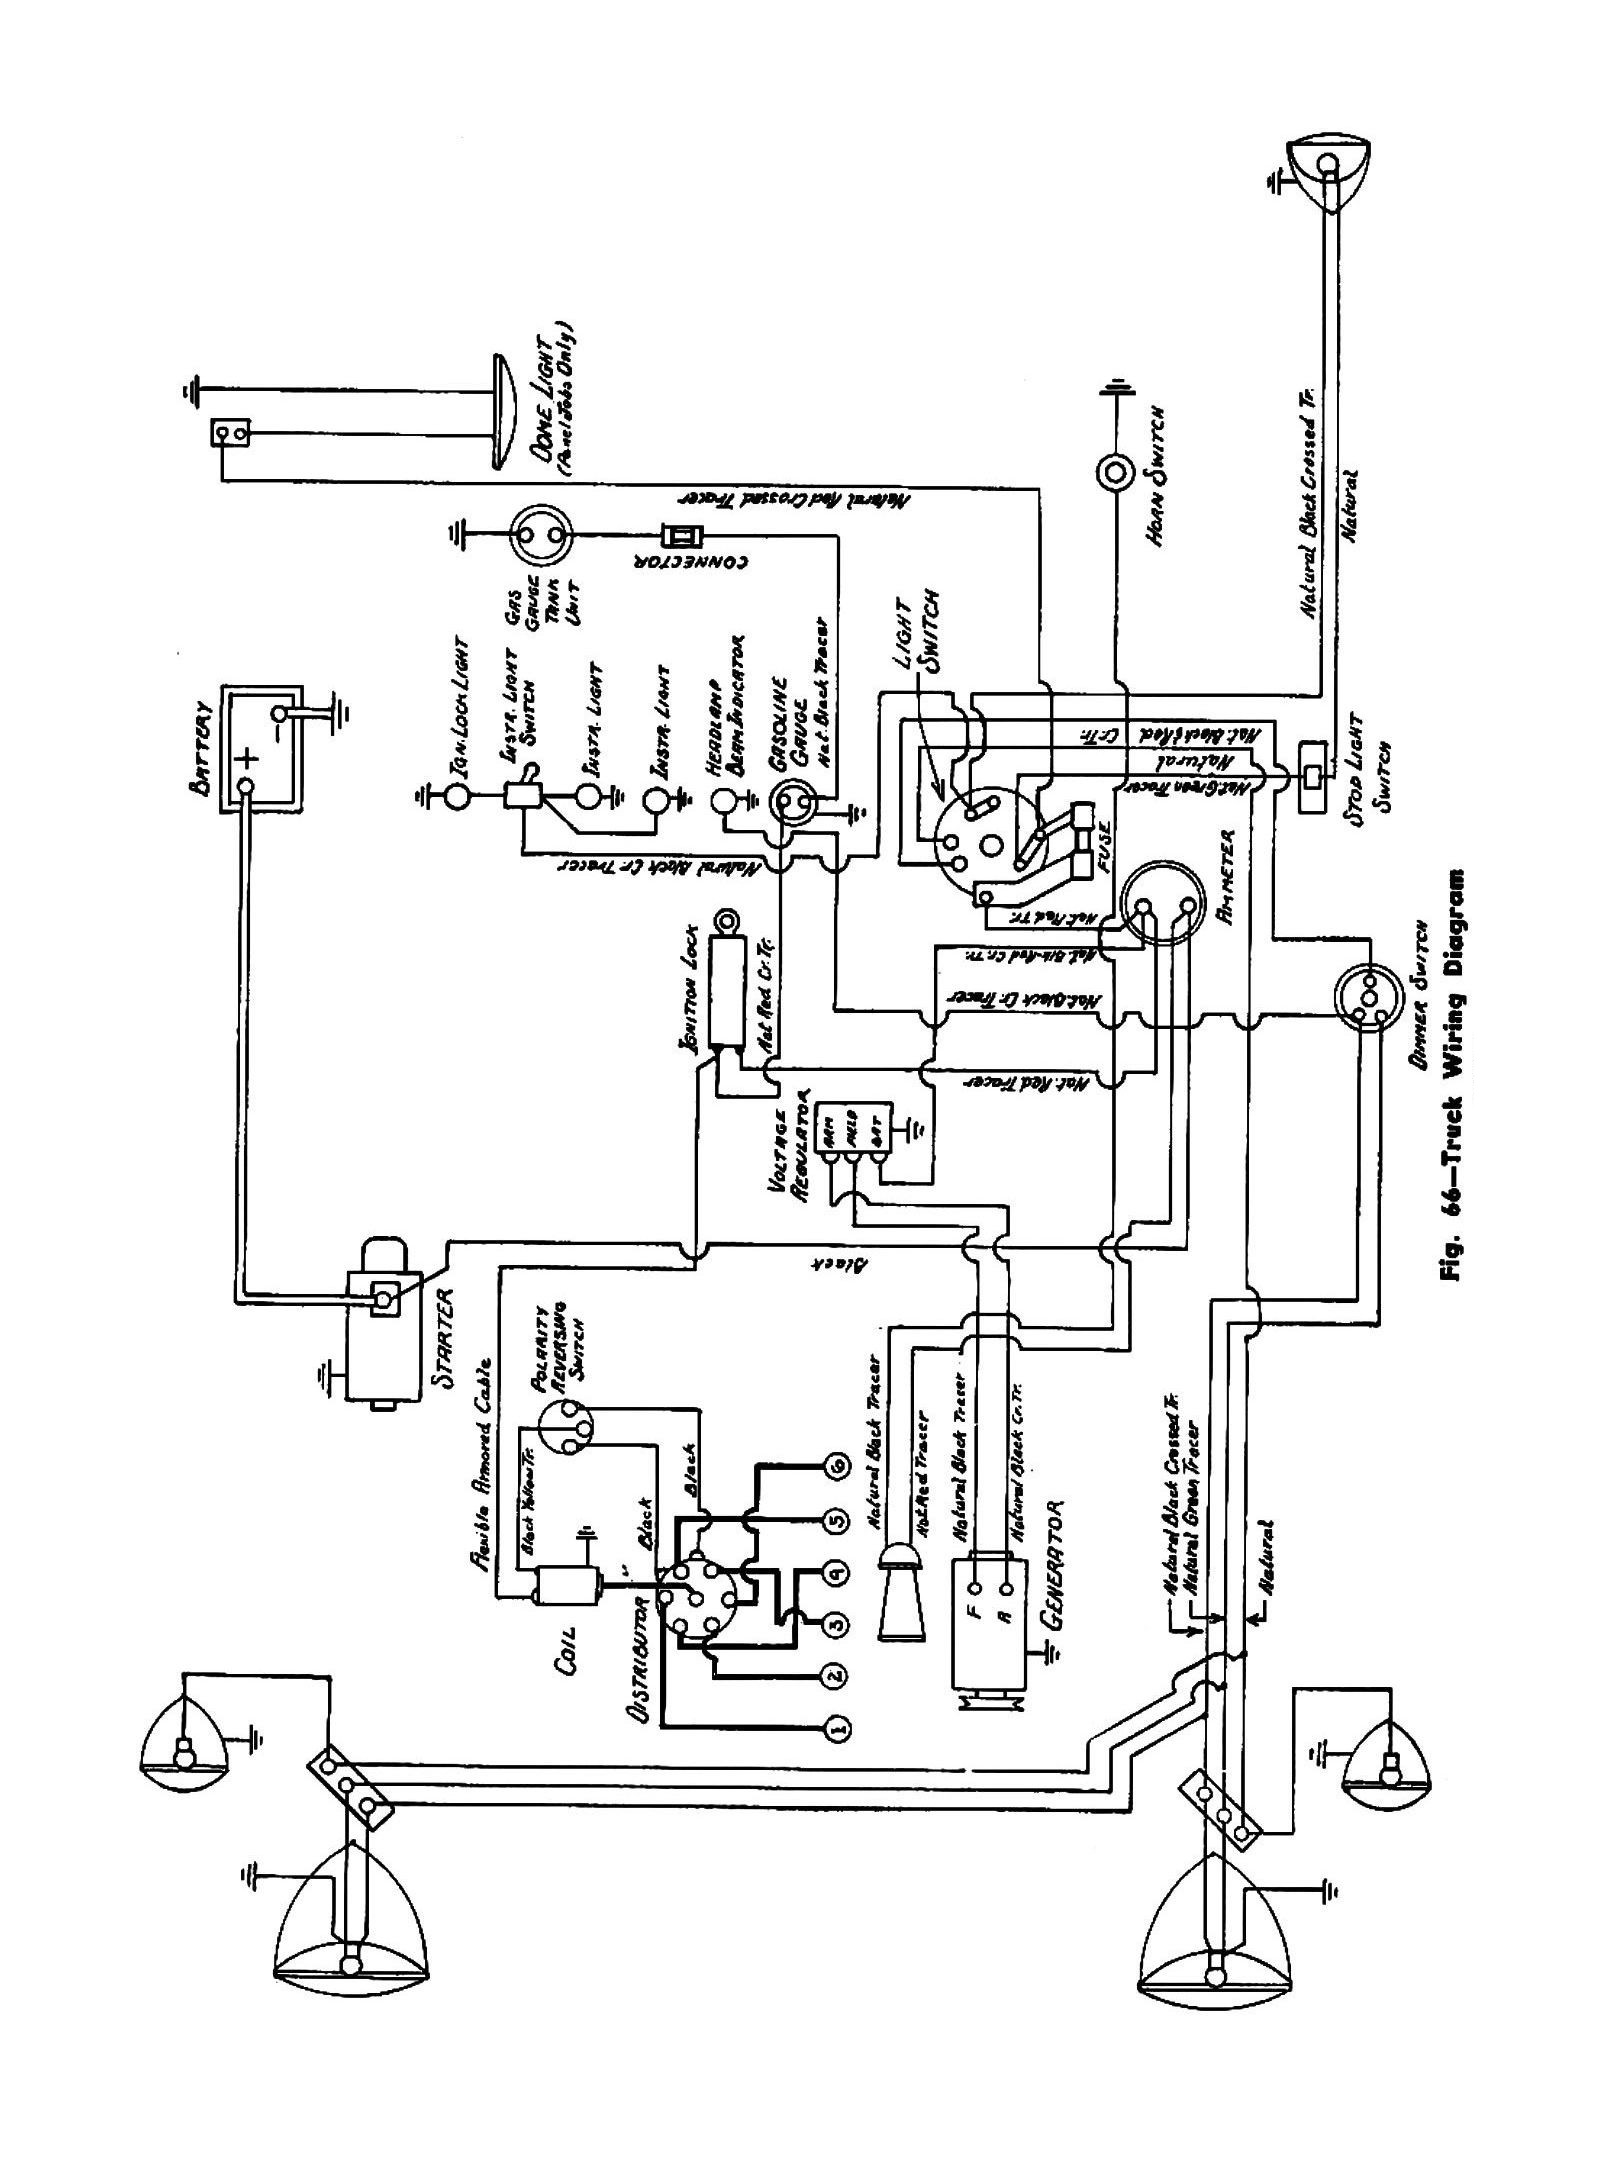 45truck truck wiring diagrams truck wiring diagrams instruction gm truck wiring harness at cita.asia